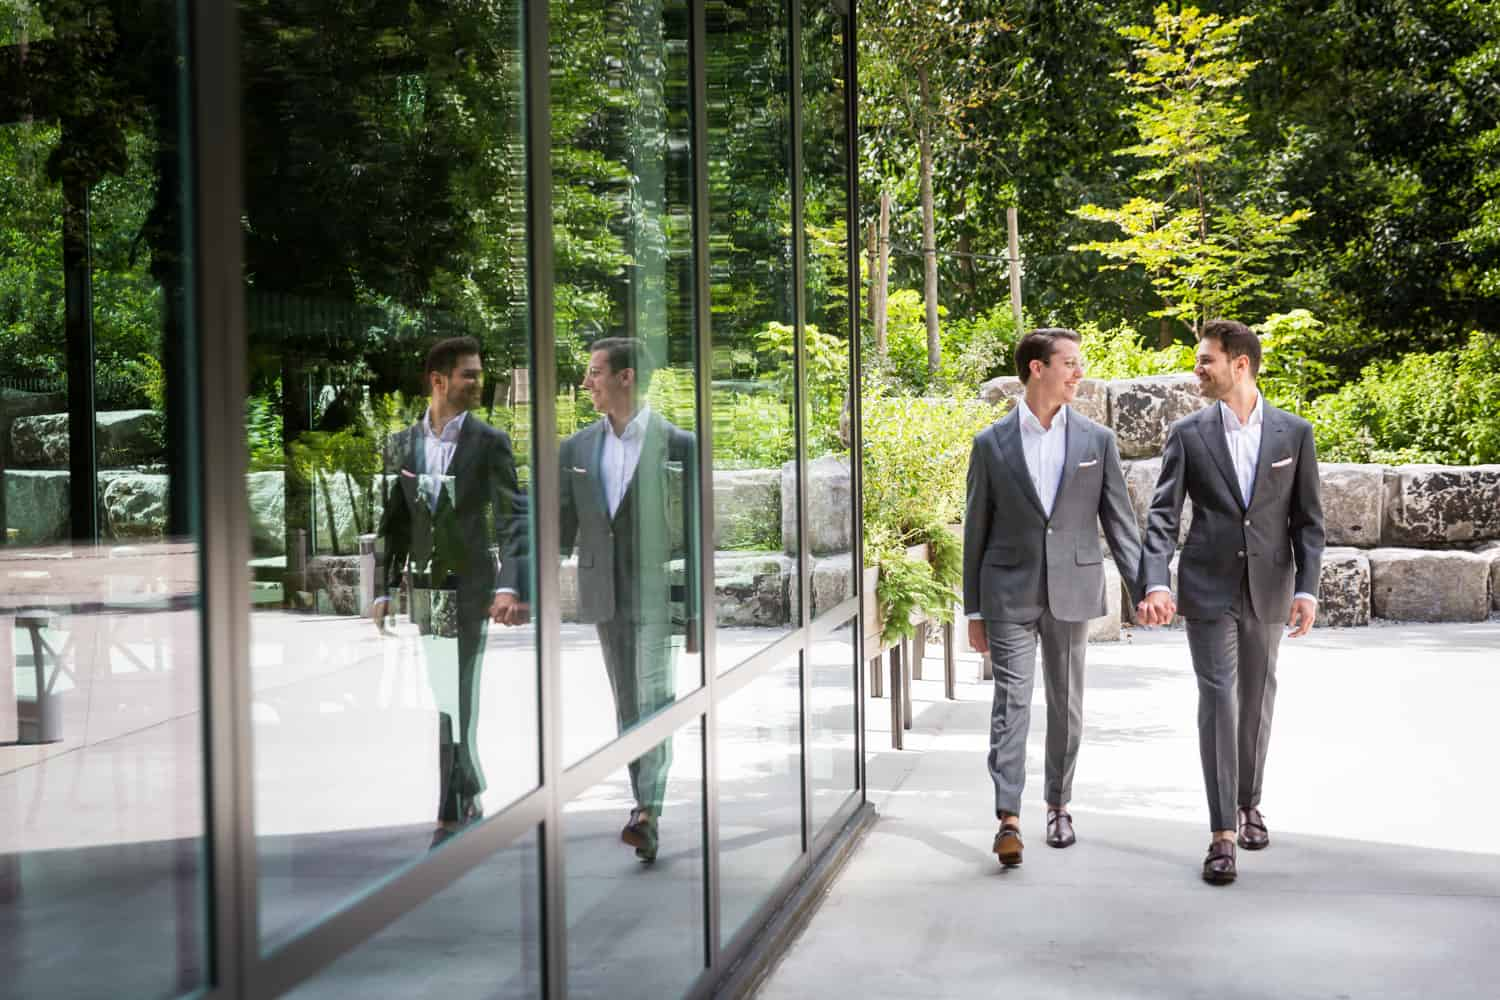 Greenpoint Loft wedding photos of two grooms walking hand-in-hand reflected in glass